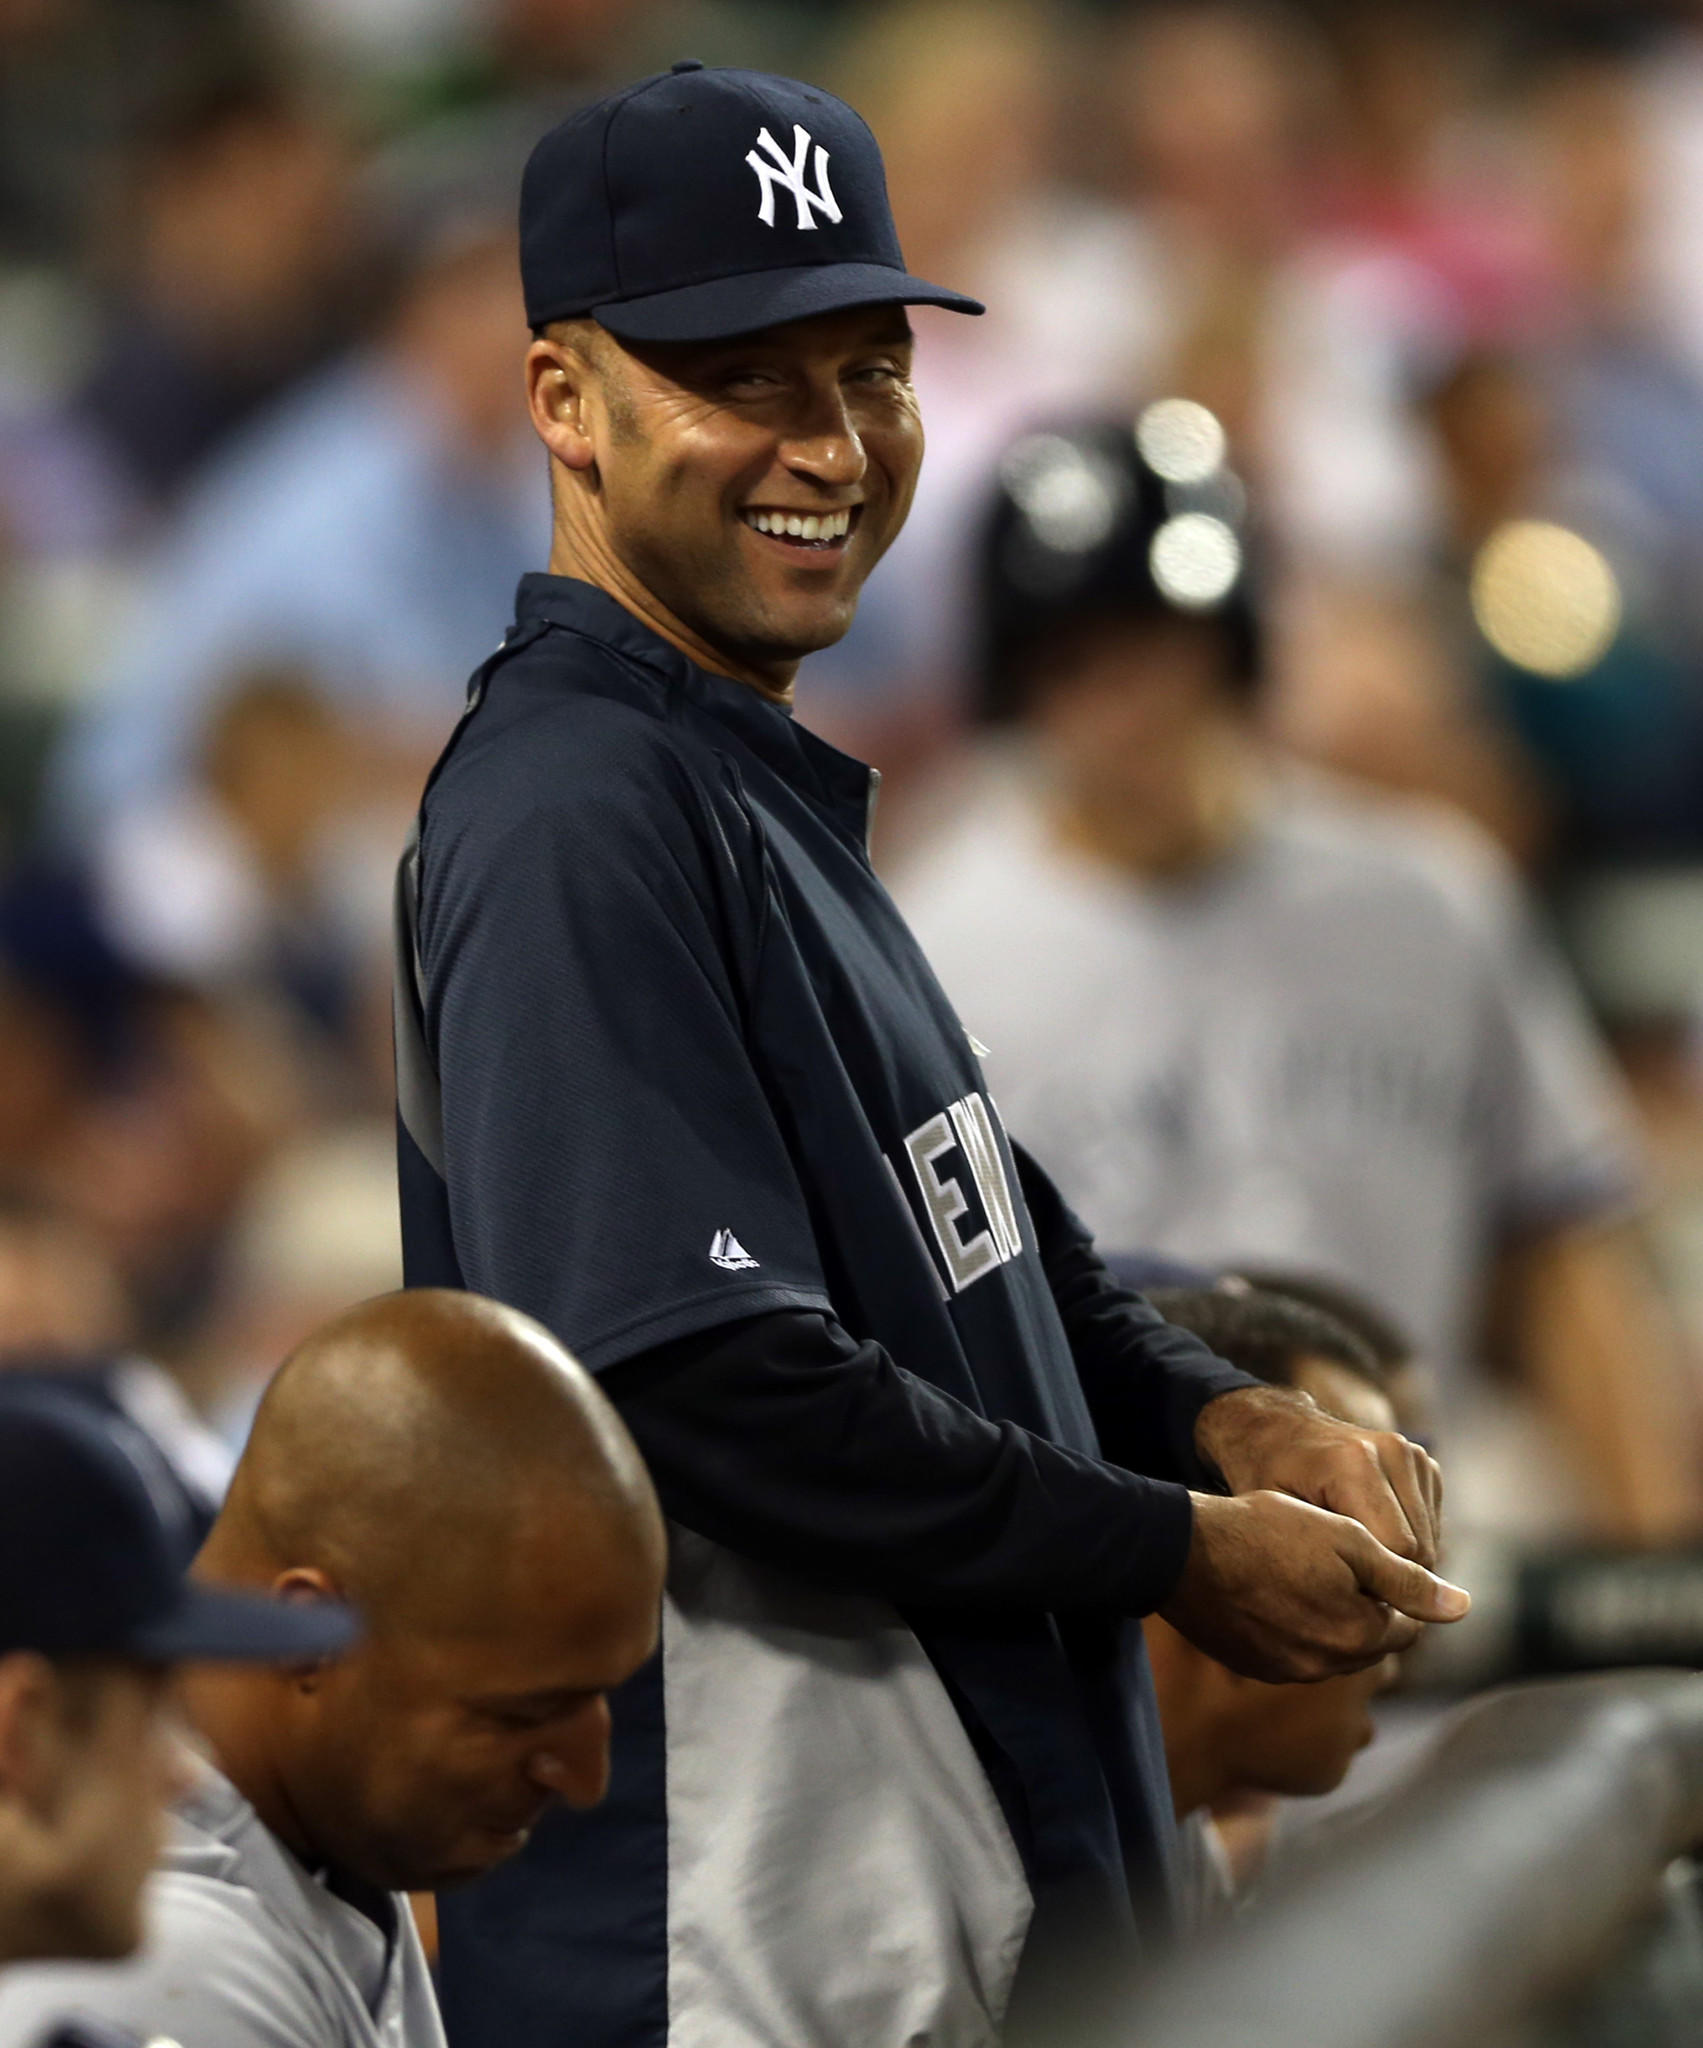 New York Yankees' Derek Jeter during a game against Chicago White Sox on Aug. 7.